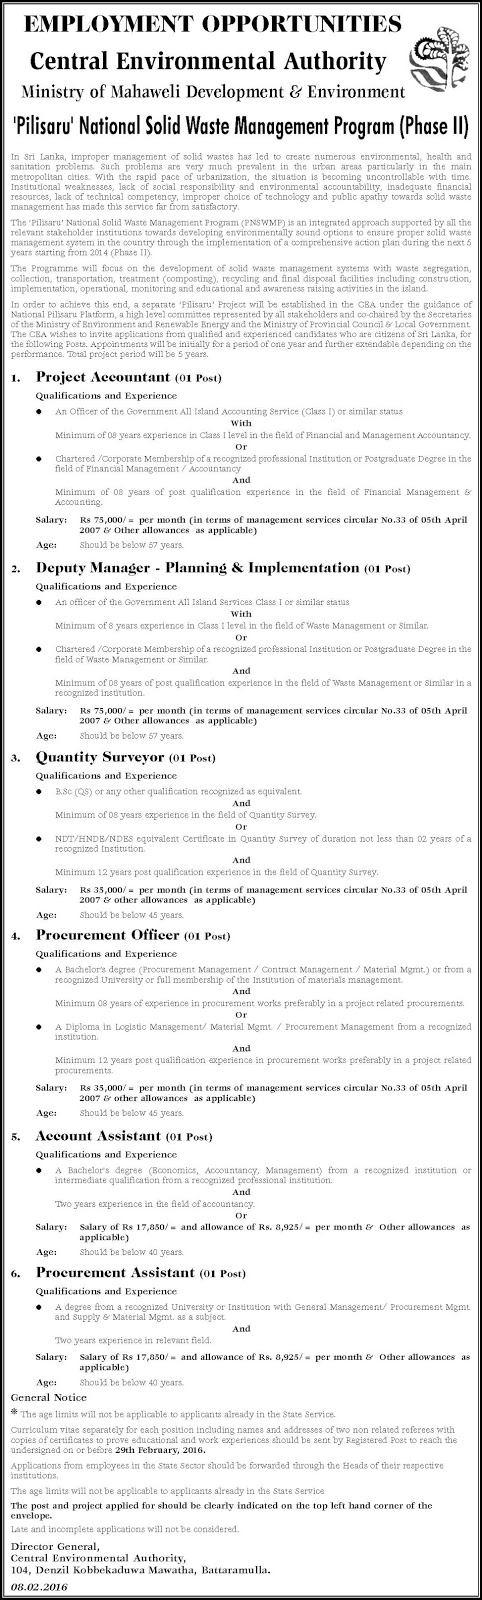 Vacancies – Project Accountant - Deputy Manager - Quantity Surveyor – Procurement Officer – Accountant Assistant - Procurement Assistant - Deputy Manager - Central Environmental Authority